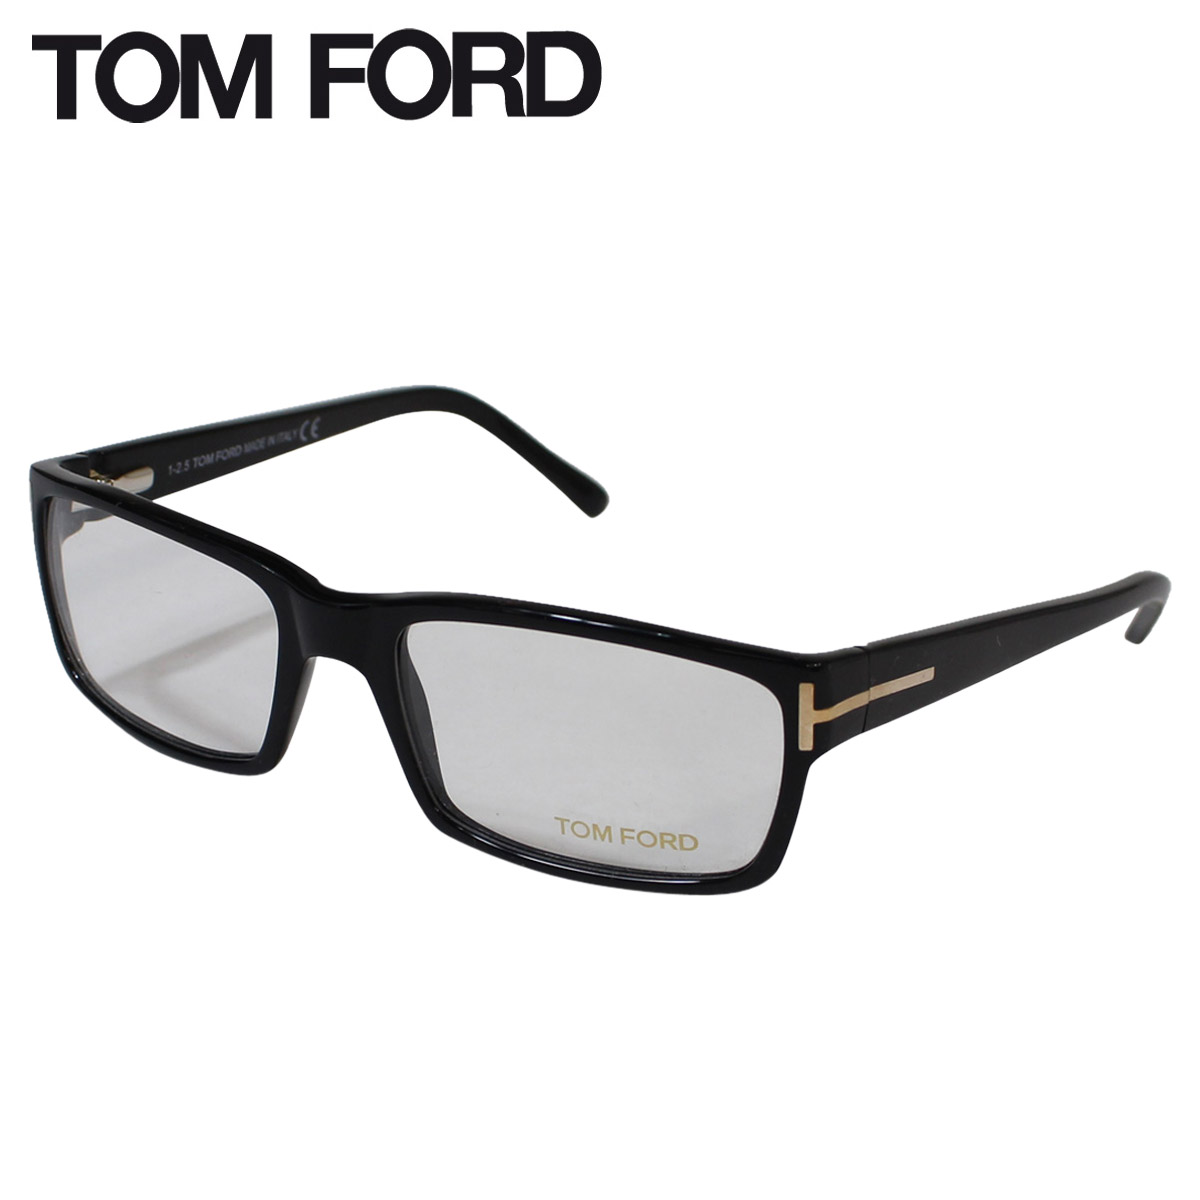 ad4aee1084 ALLSPORTS  Tom Ford sunglasses mens Womens TOM FORD eyewear ACETATE FRAMES  FT5013 Italy-made  11   22 new in stock